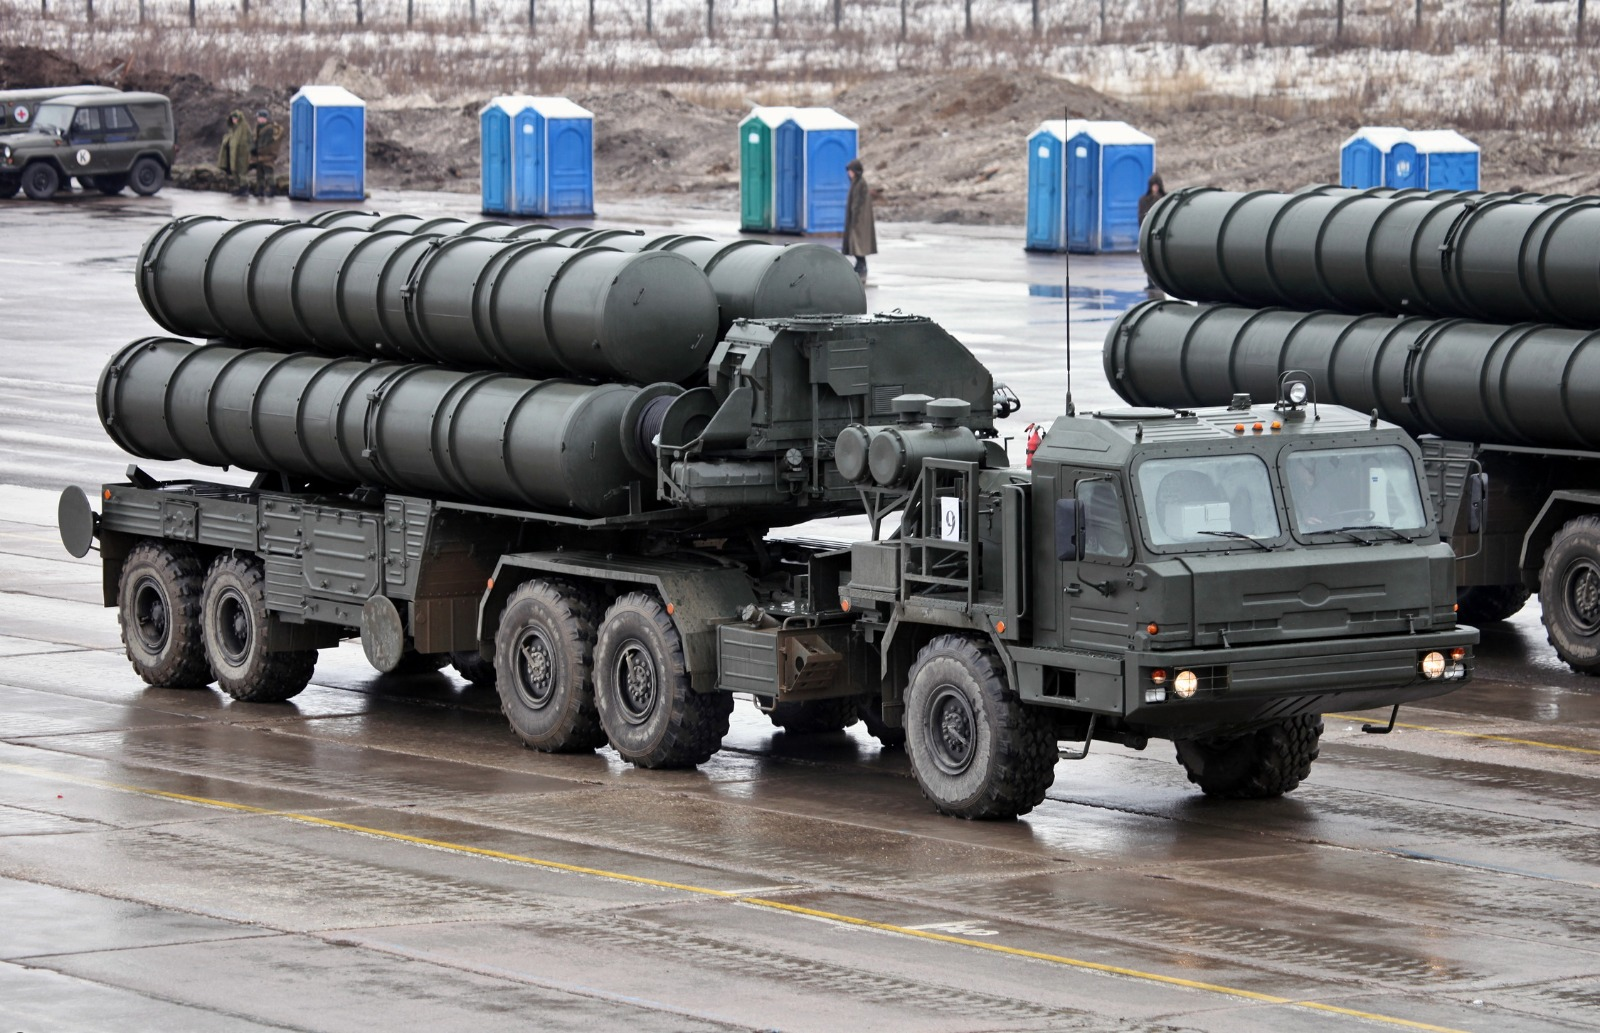 Turkey and the Russia's Deadly S-400: The Air Defense System That